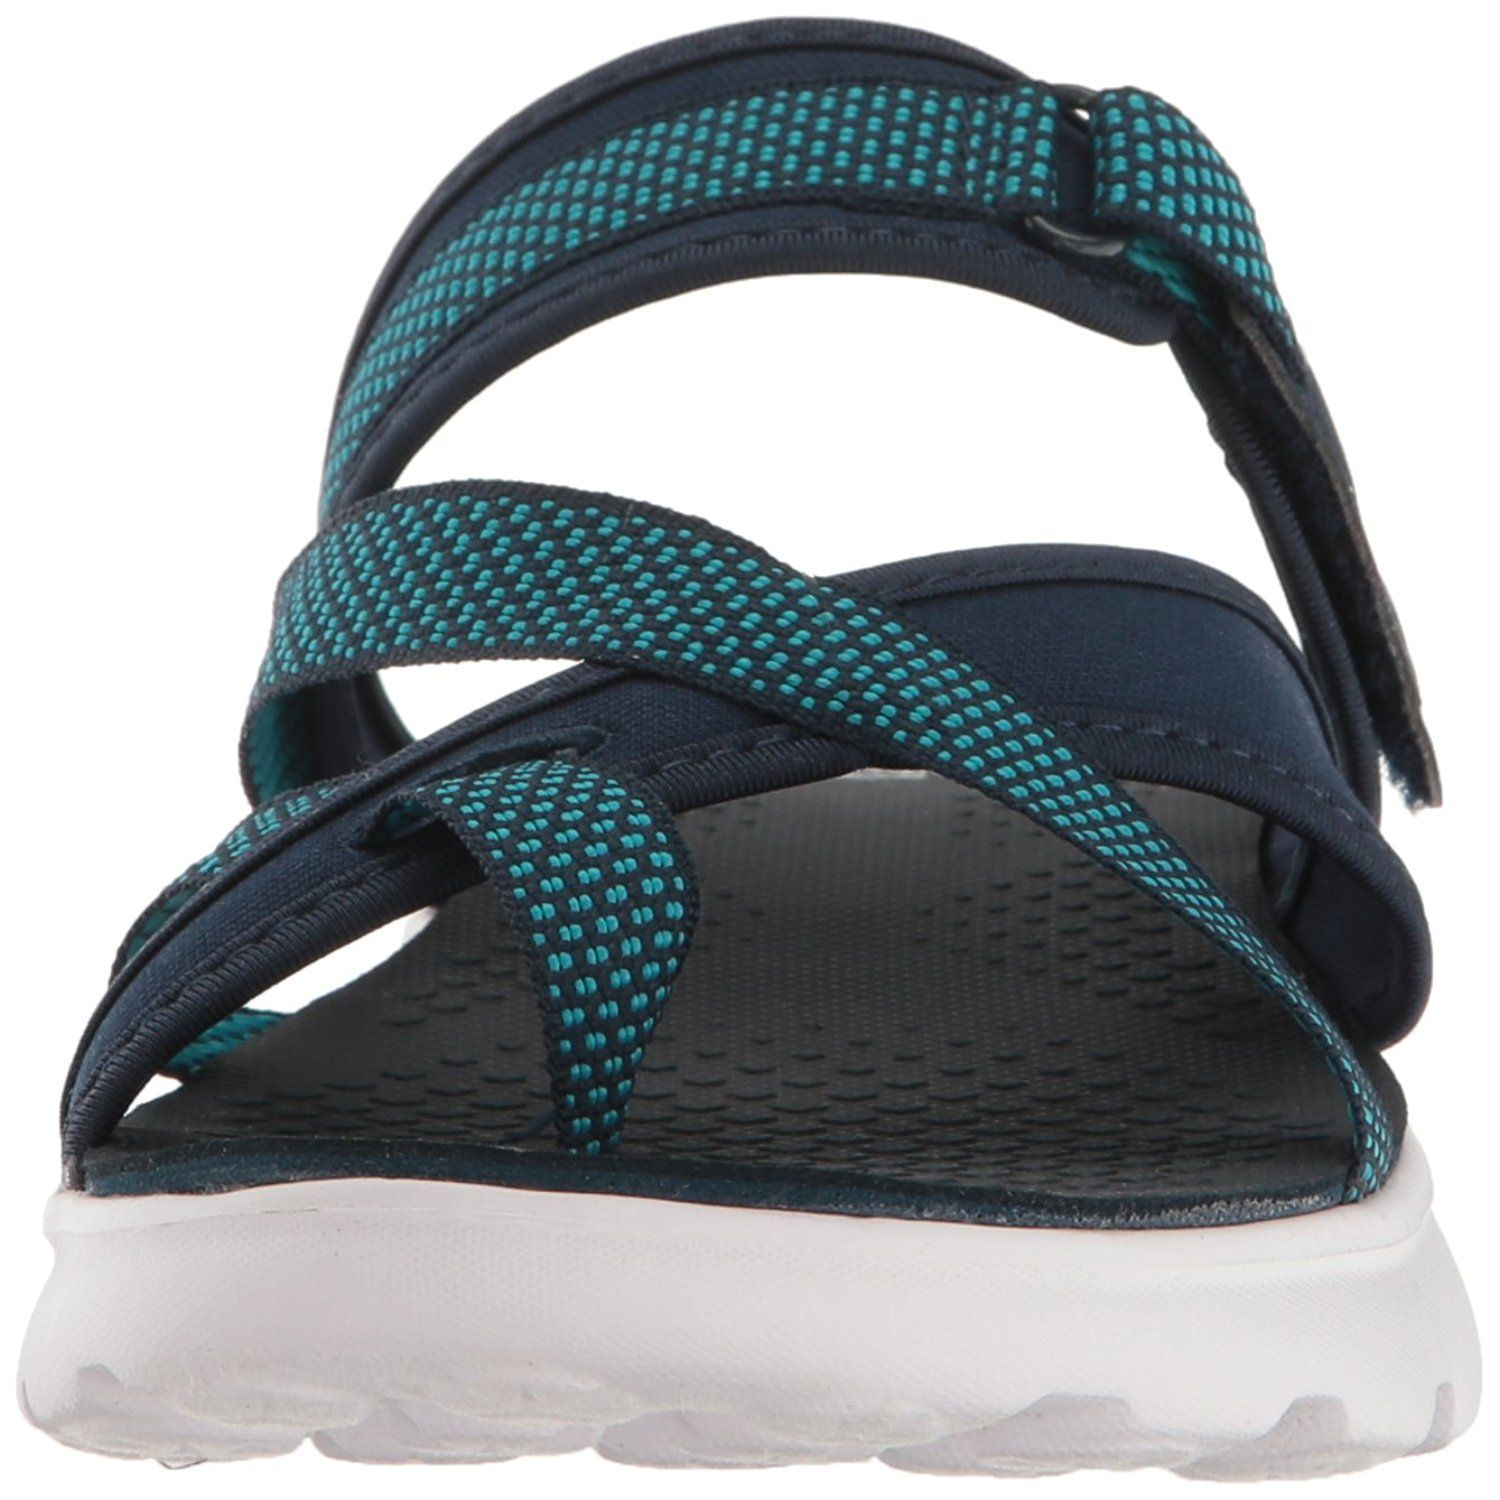 047e7ec2206 Skechers Performance Women s On The Go 400 Discover Flip Flop    Click  image for more details. (This is an affiliate link)  sandalslover